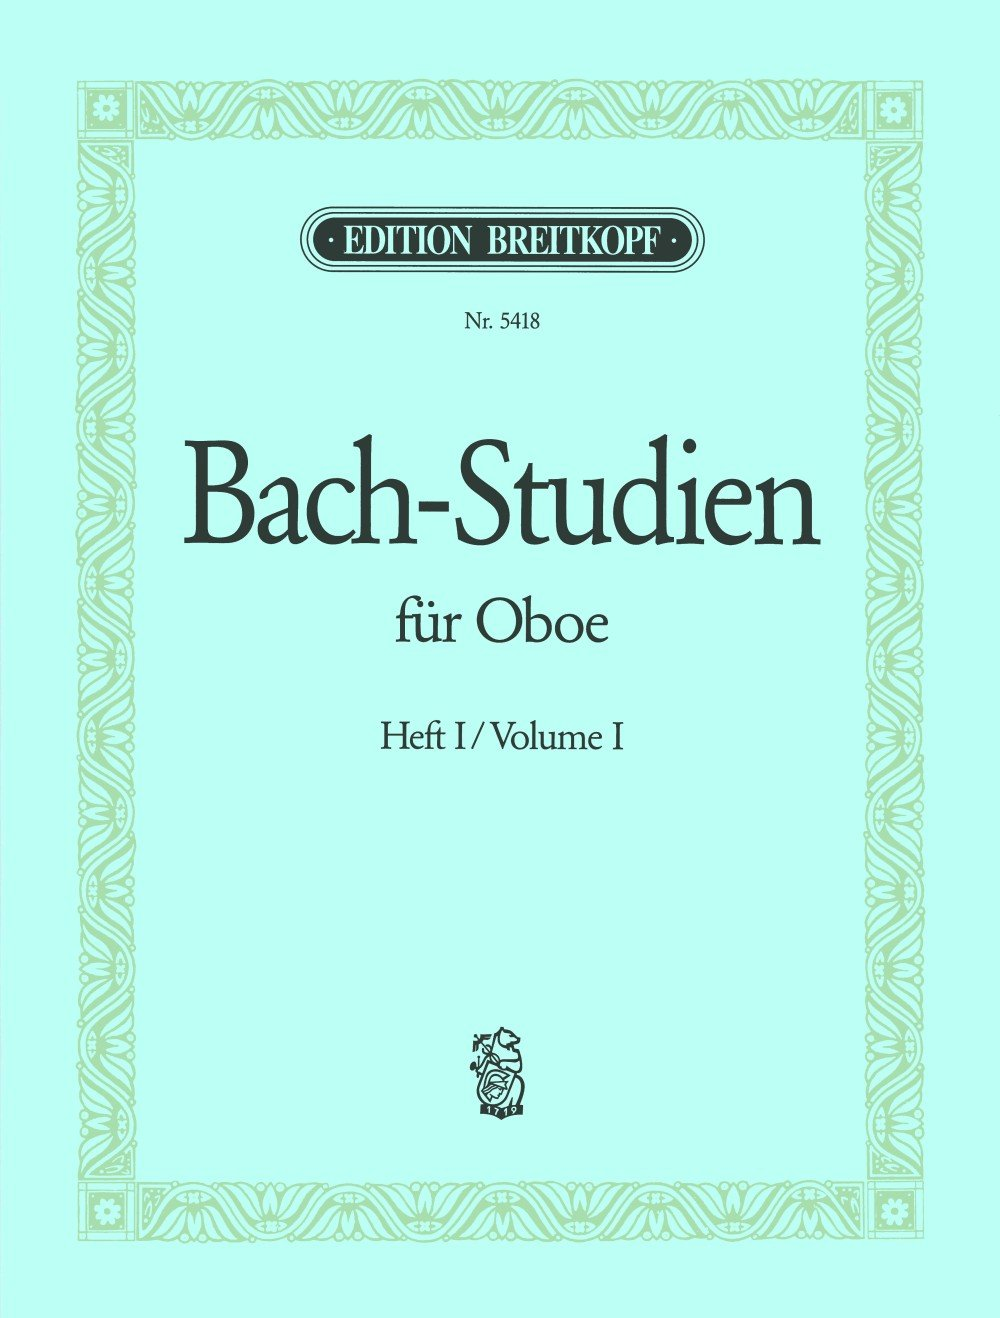 Bach Studies for Oboe - Volume 1 (A collection of arias and movements)